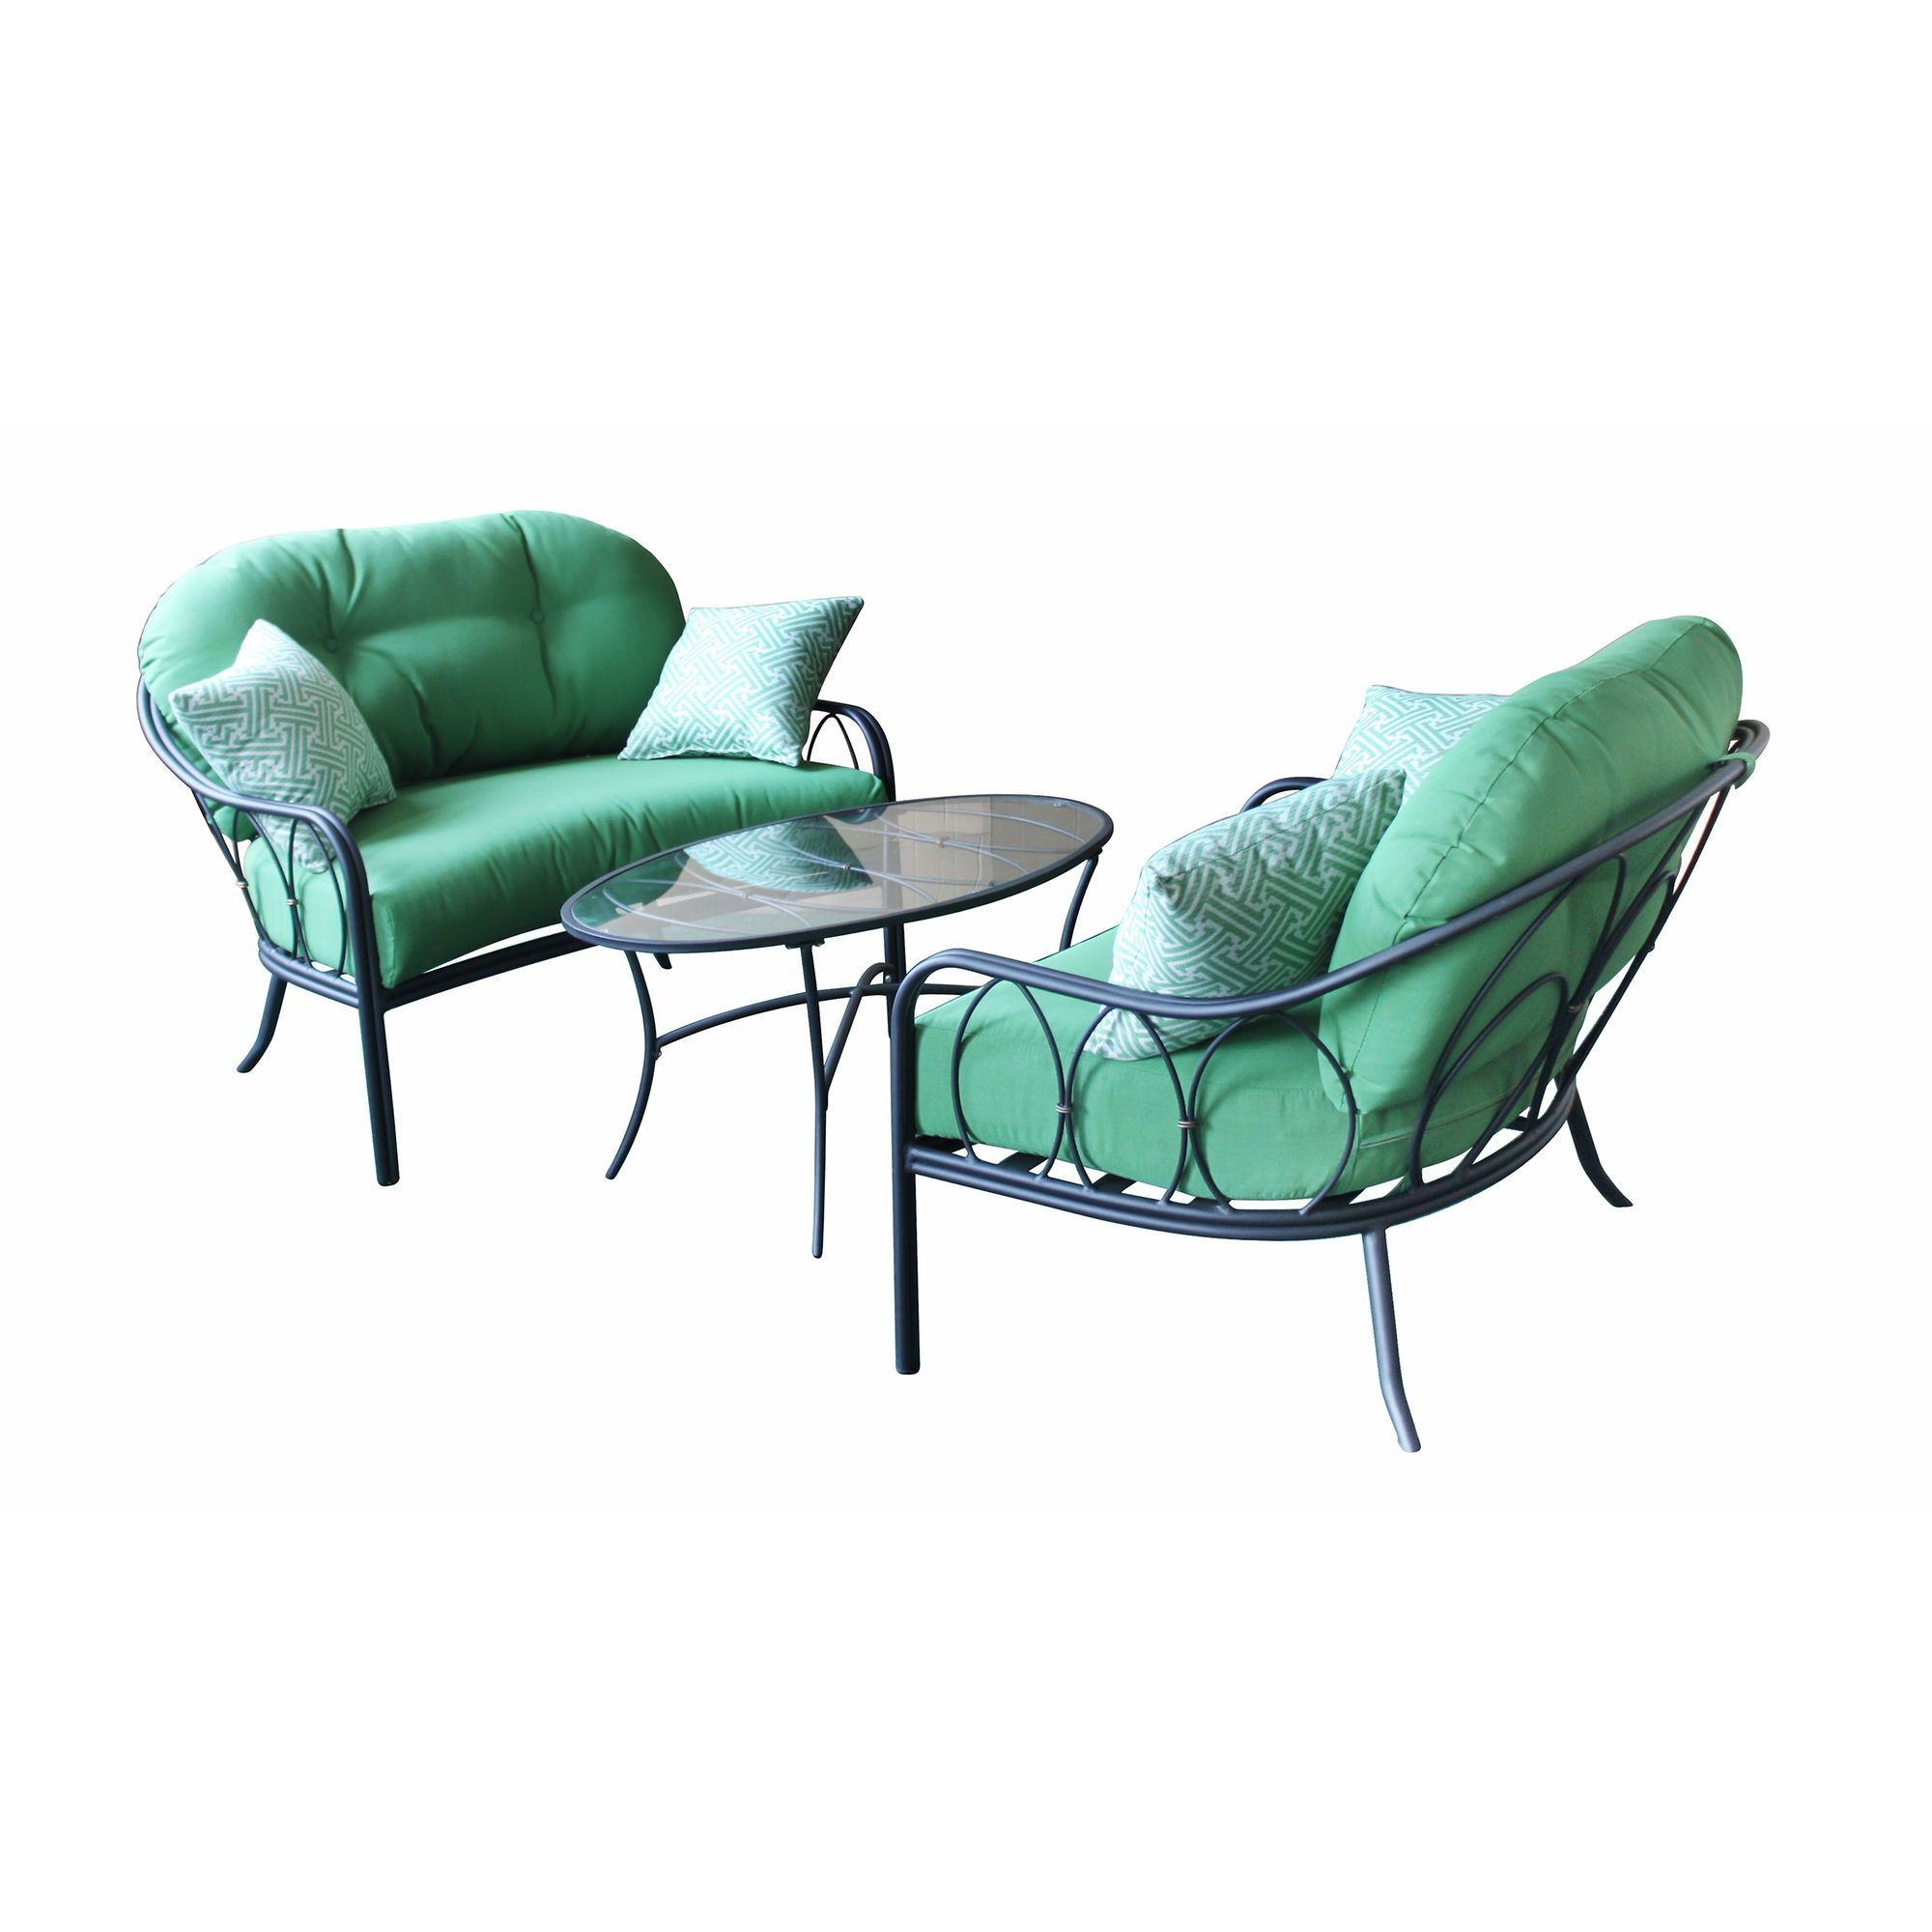 Woodard Worldwide 3-Piece Wrought Iron Cuddle Set - $350 Emerald Green